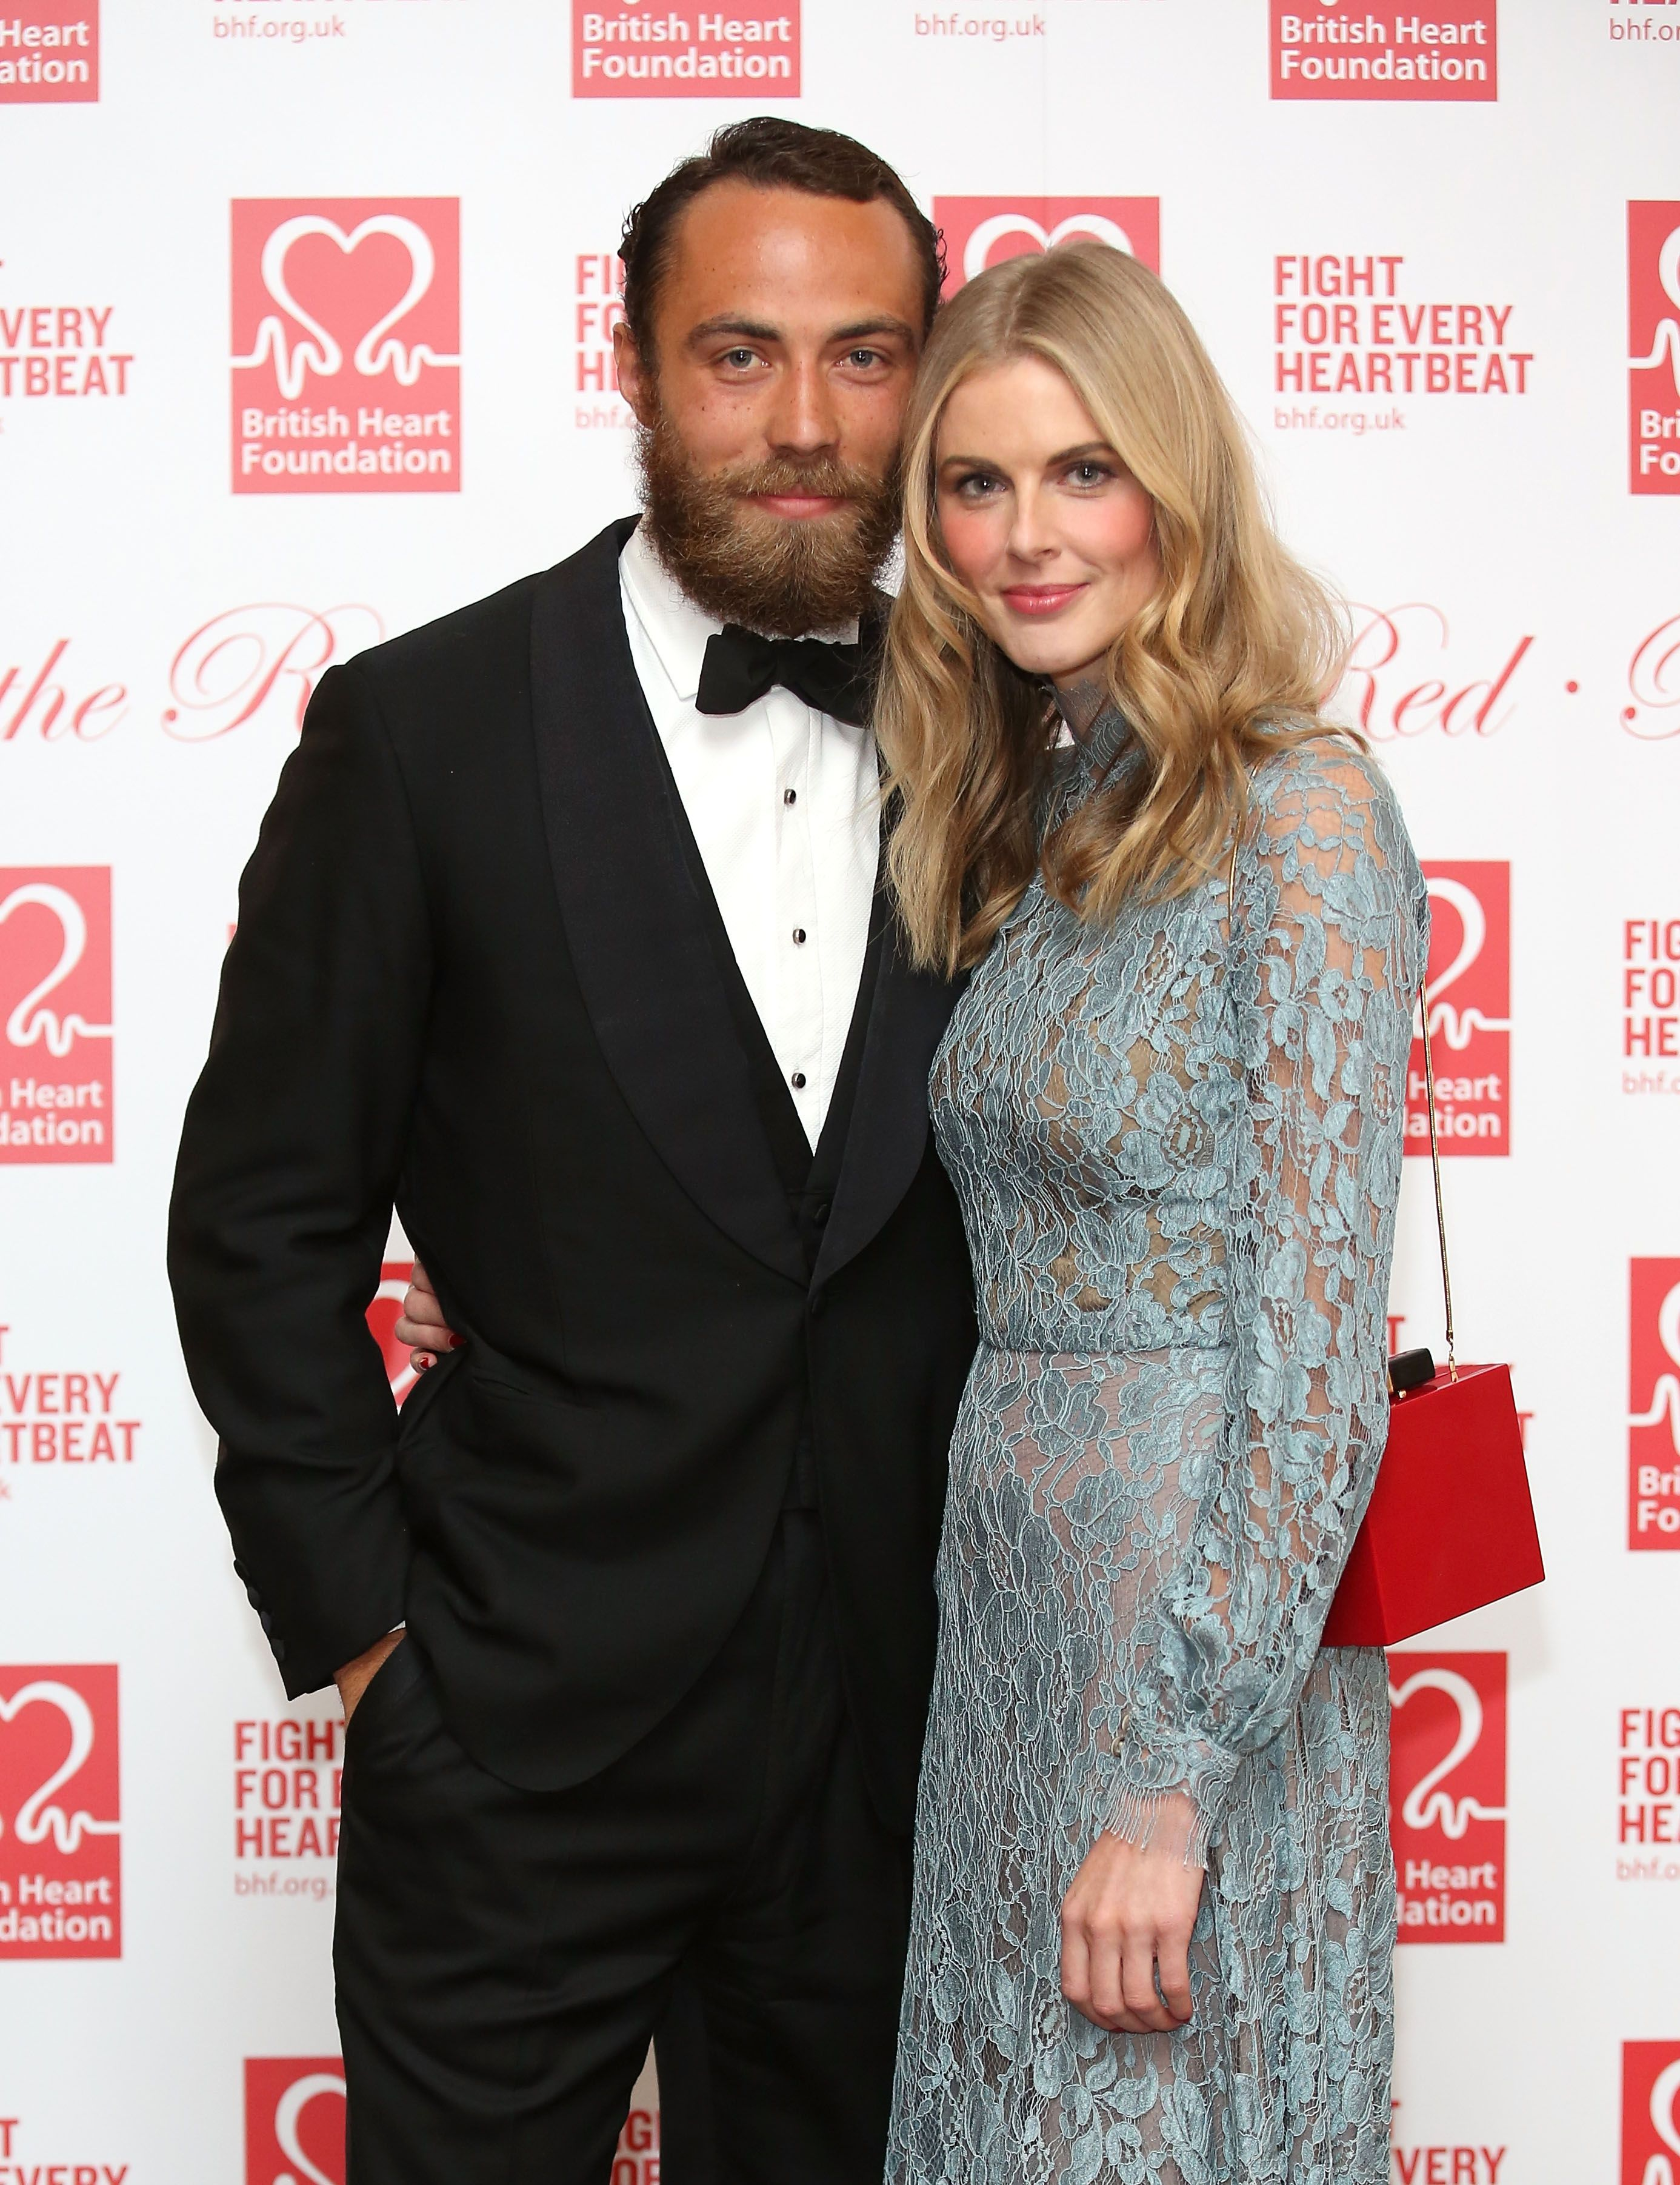 James Middleton and Alizee Thevenet cuddle while standing as they pose for the camera.